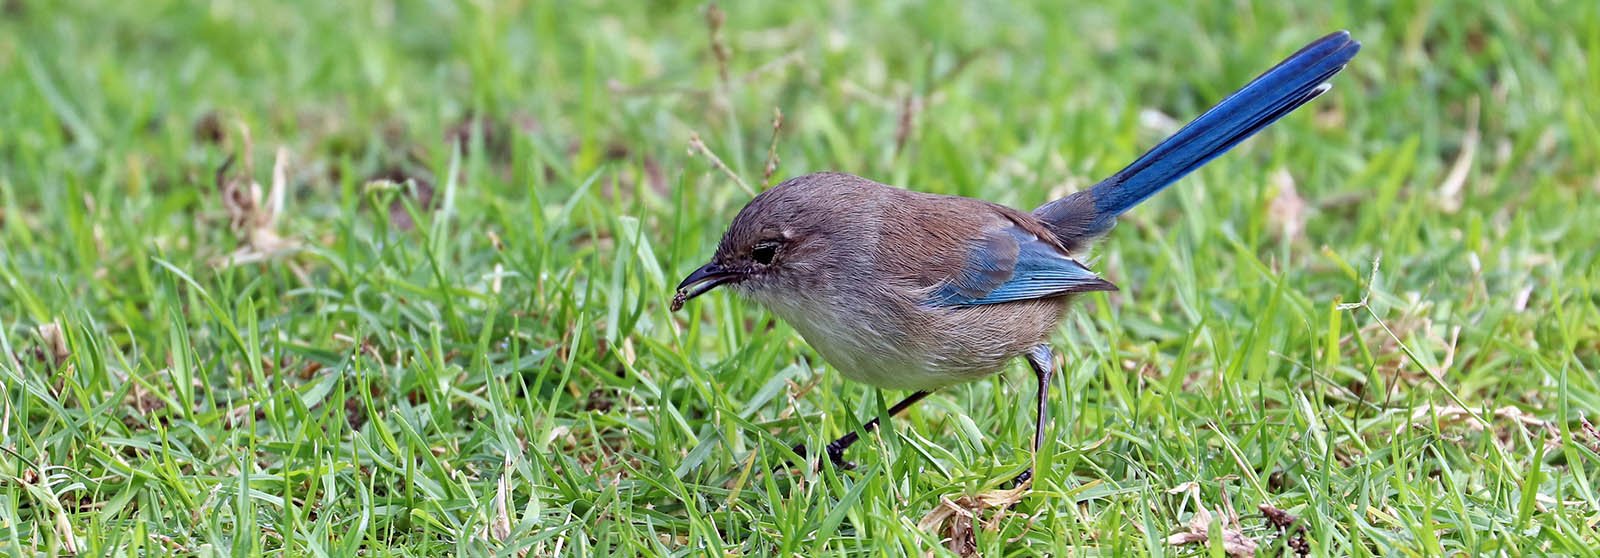 Fairy Wren catching insect (Image by Damon Ramsey)